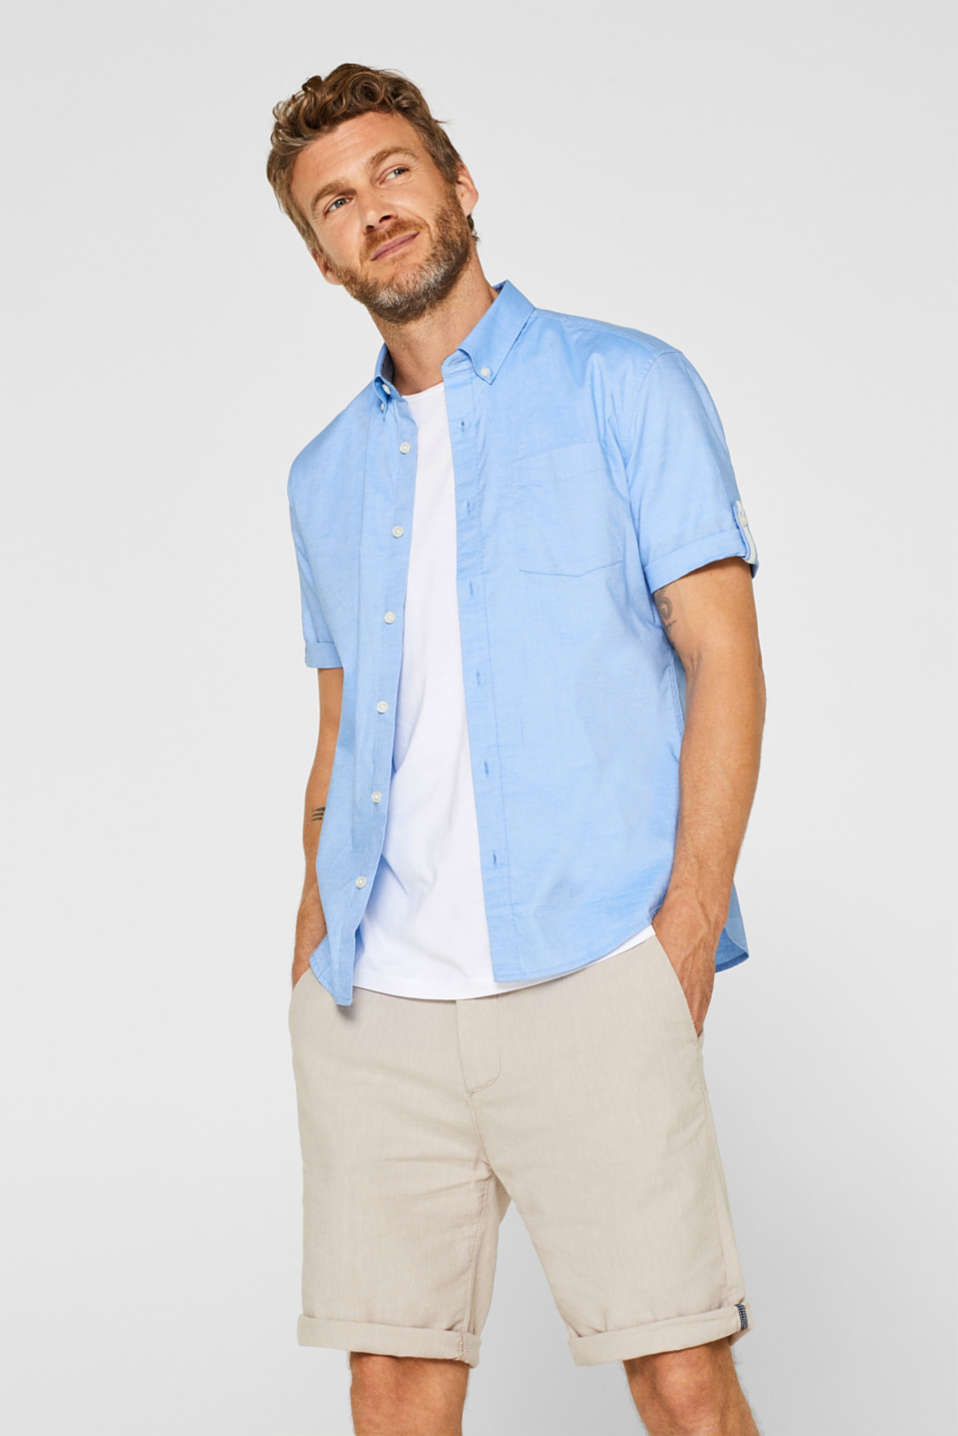 Esprit - Short sleeve shirt in stretch cotton